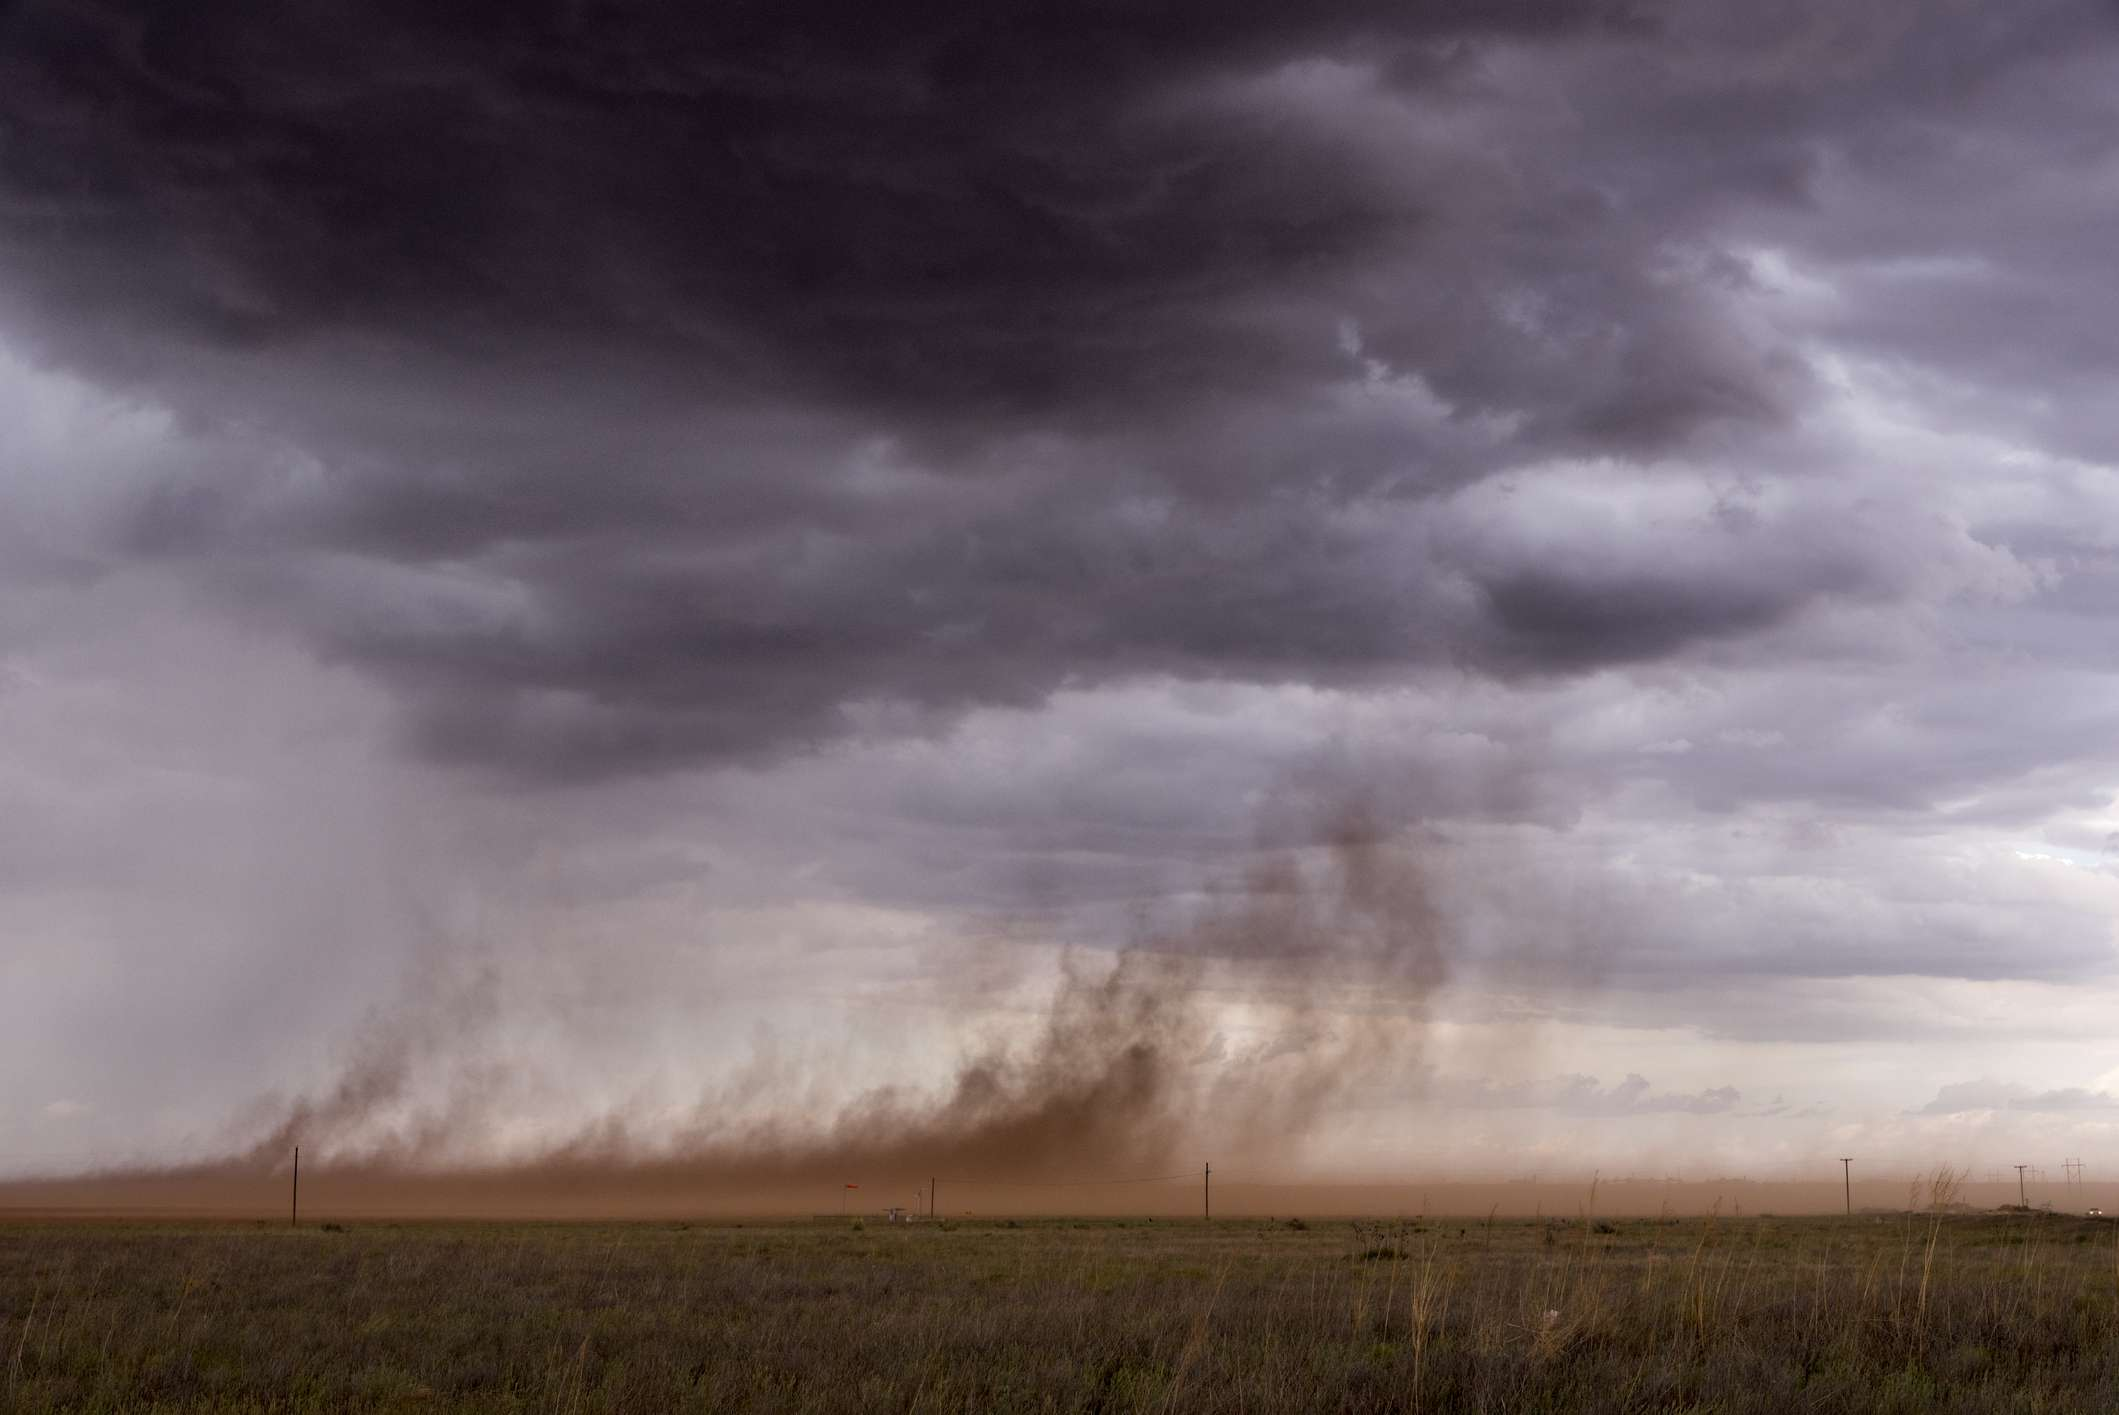 Strong winds whipping up dust in the Texas panhandle